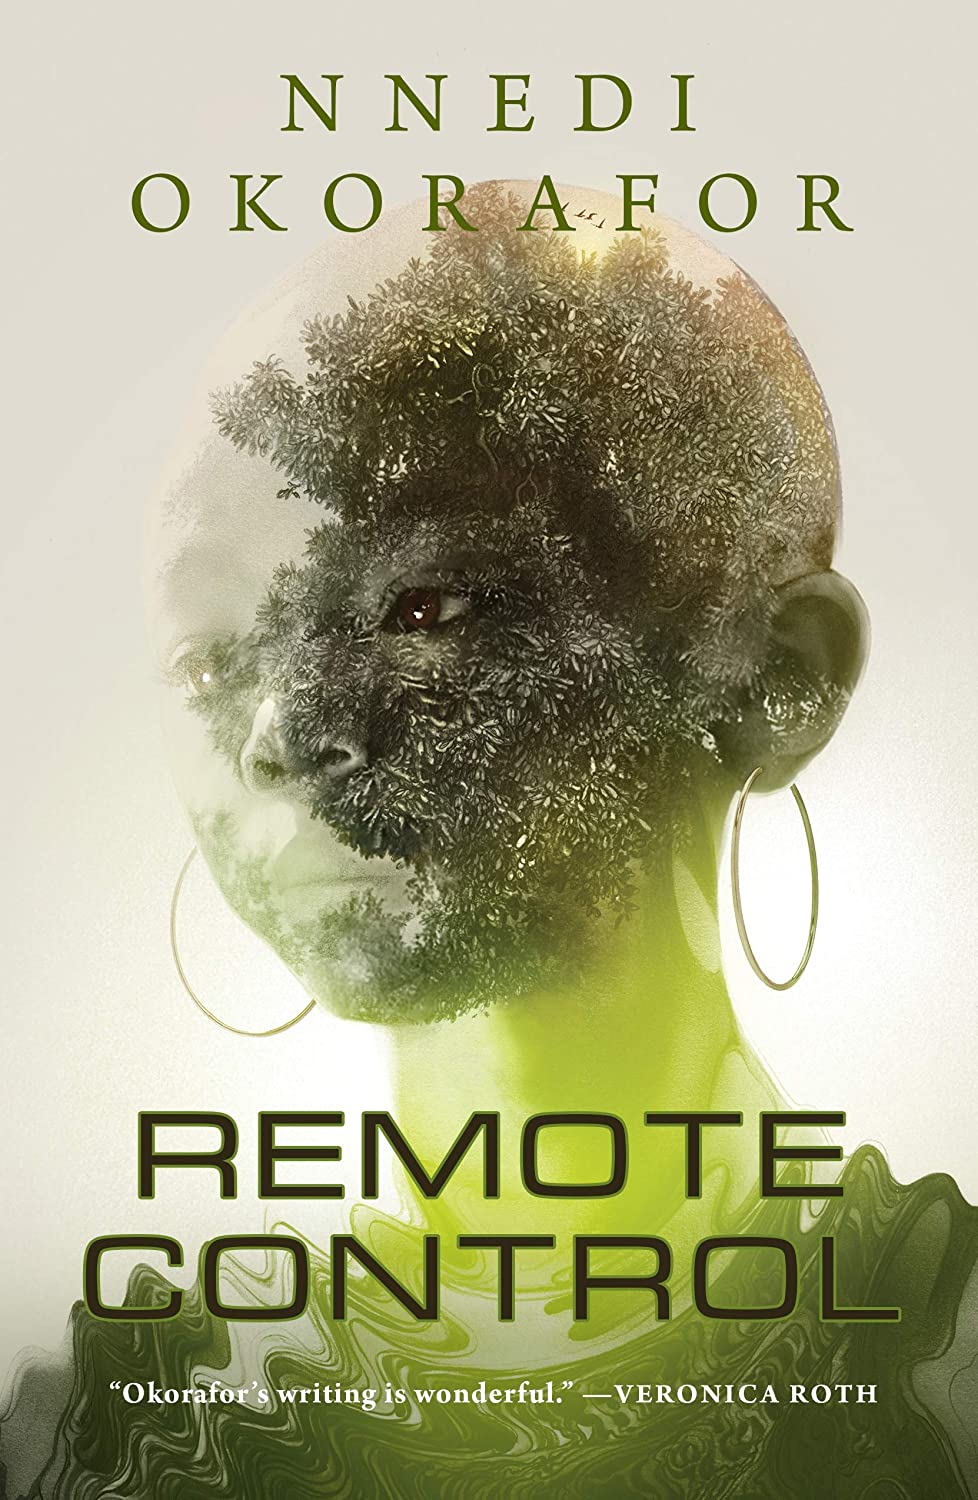 Remote Control eBook: Okorafor, Nnedi: Amazon.co.uk: Kindle Store